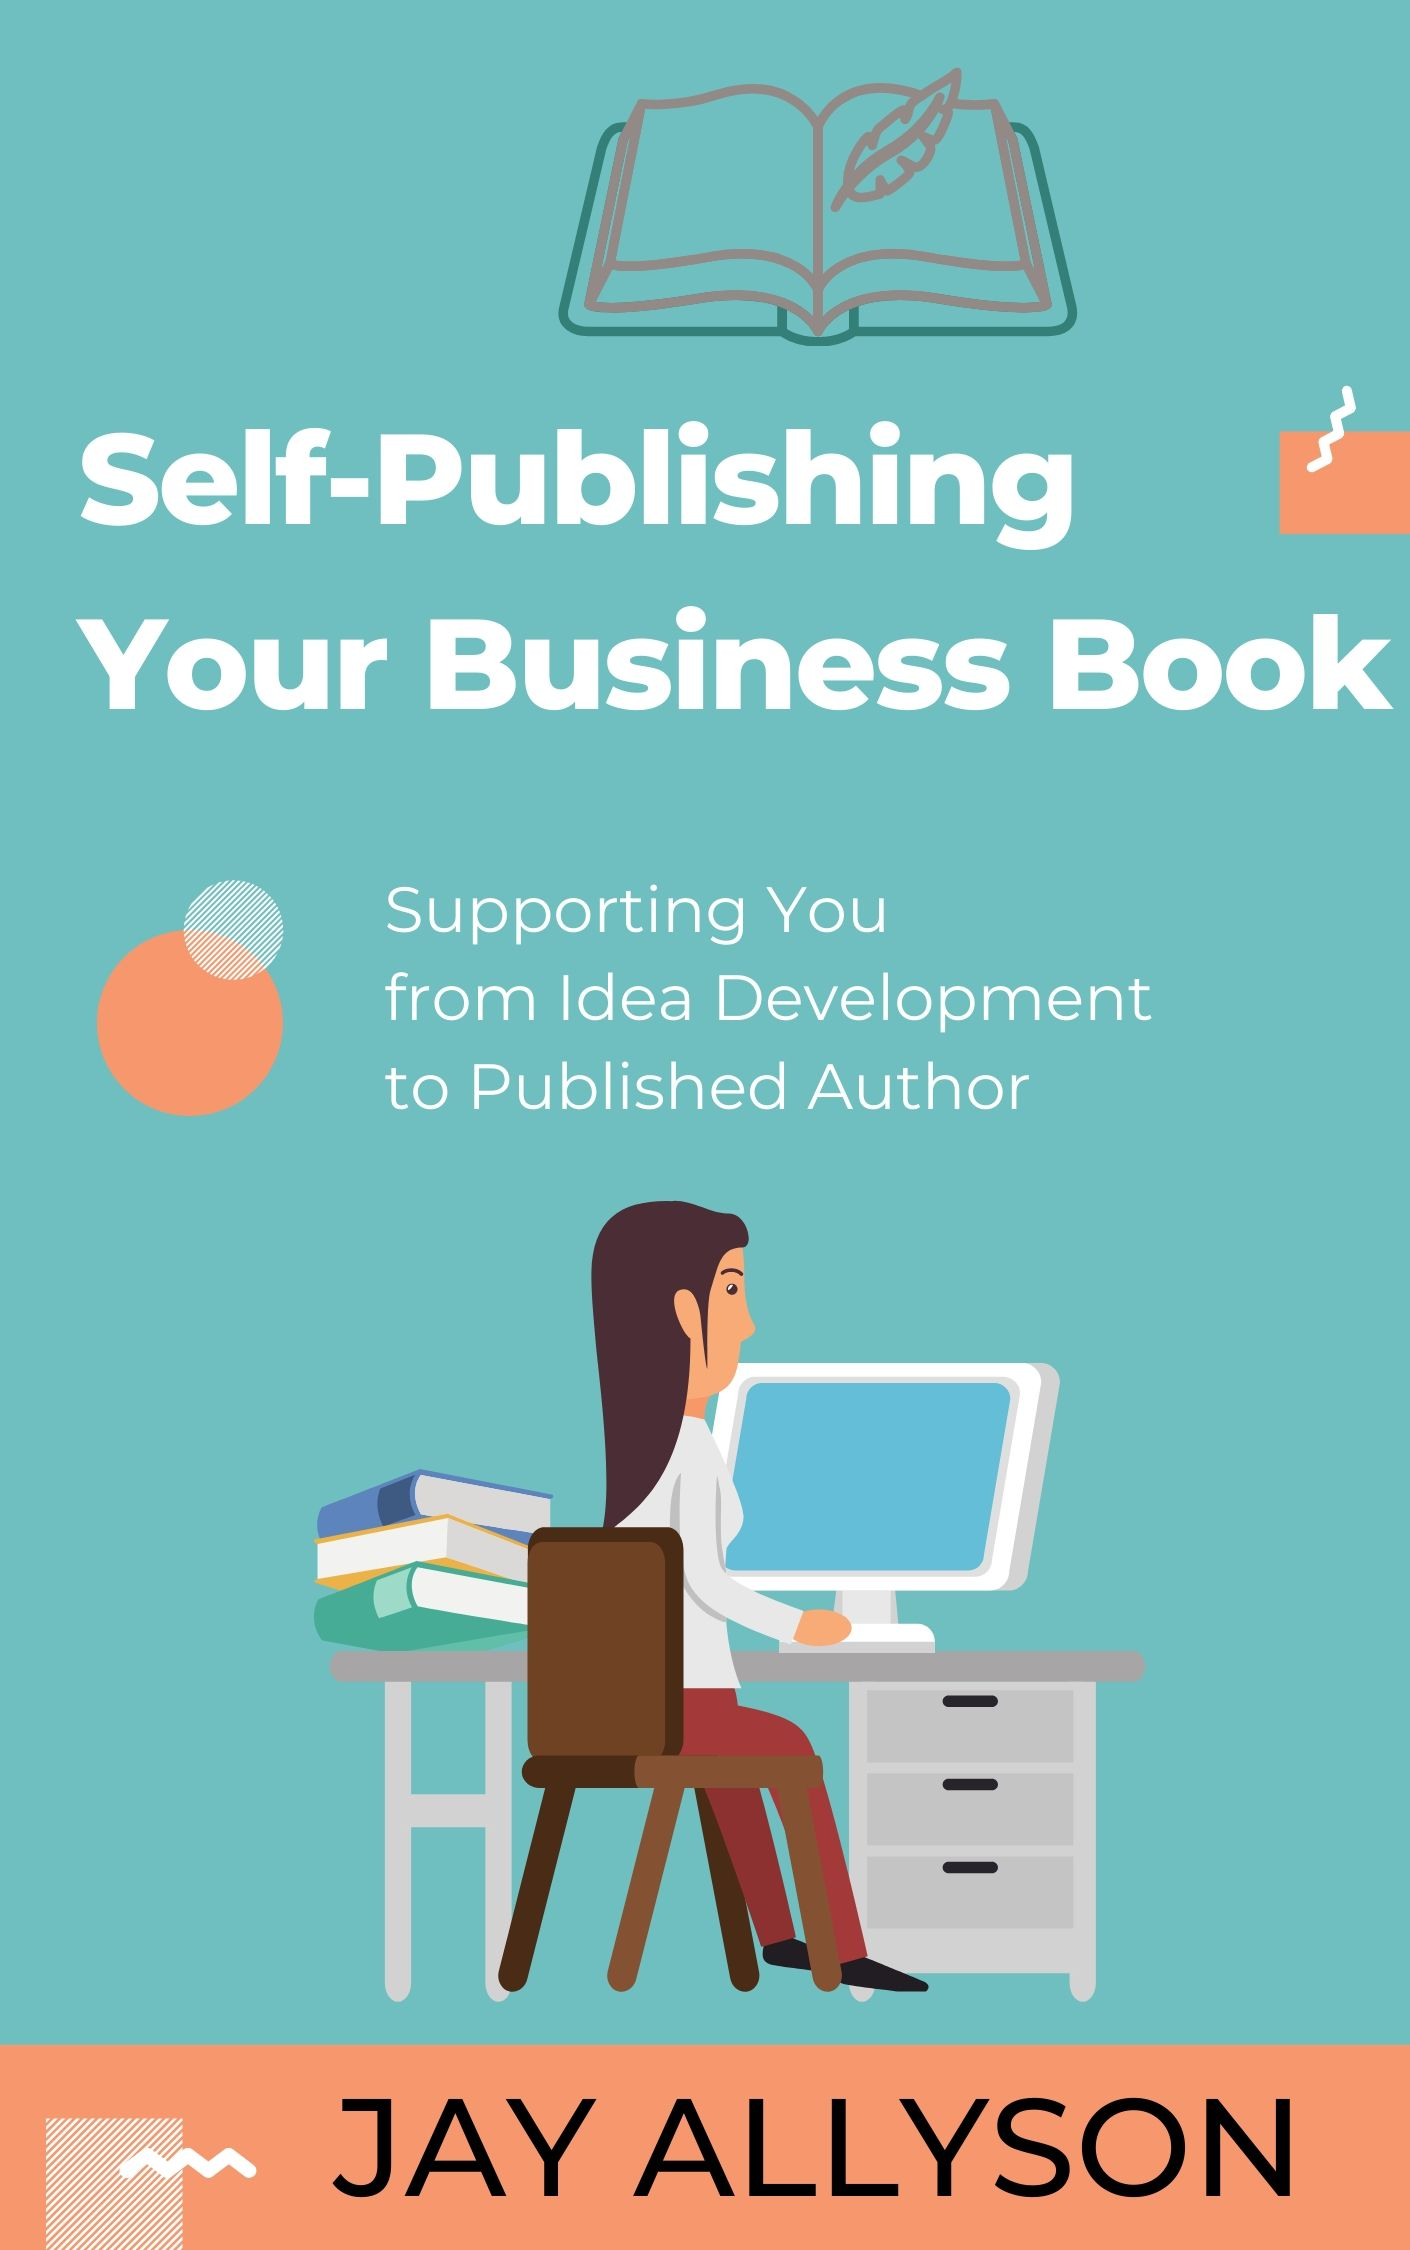 Business Book Publishing Guide Strategy Support